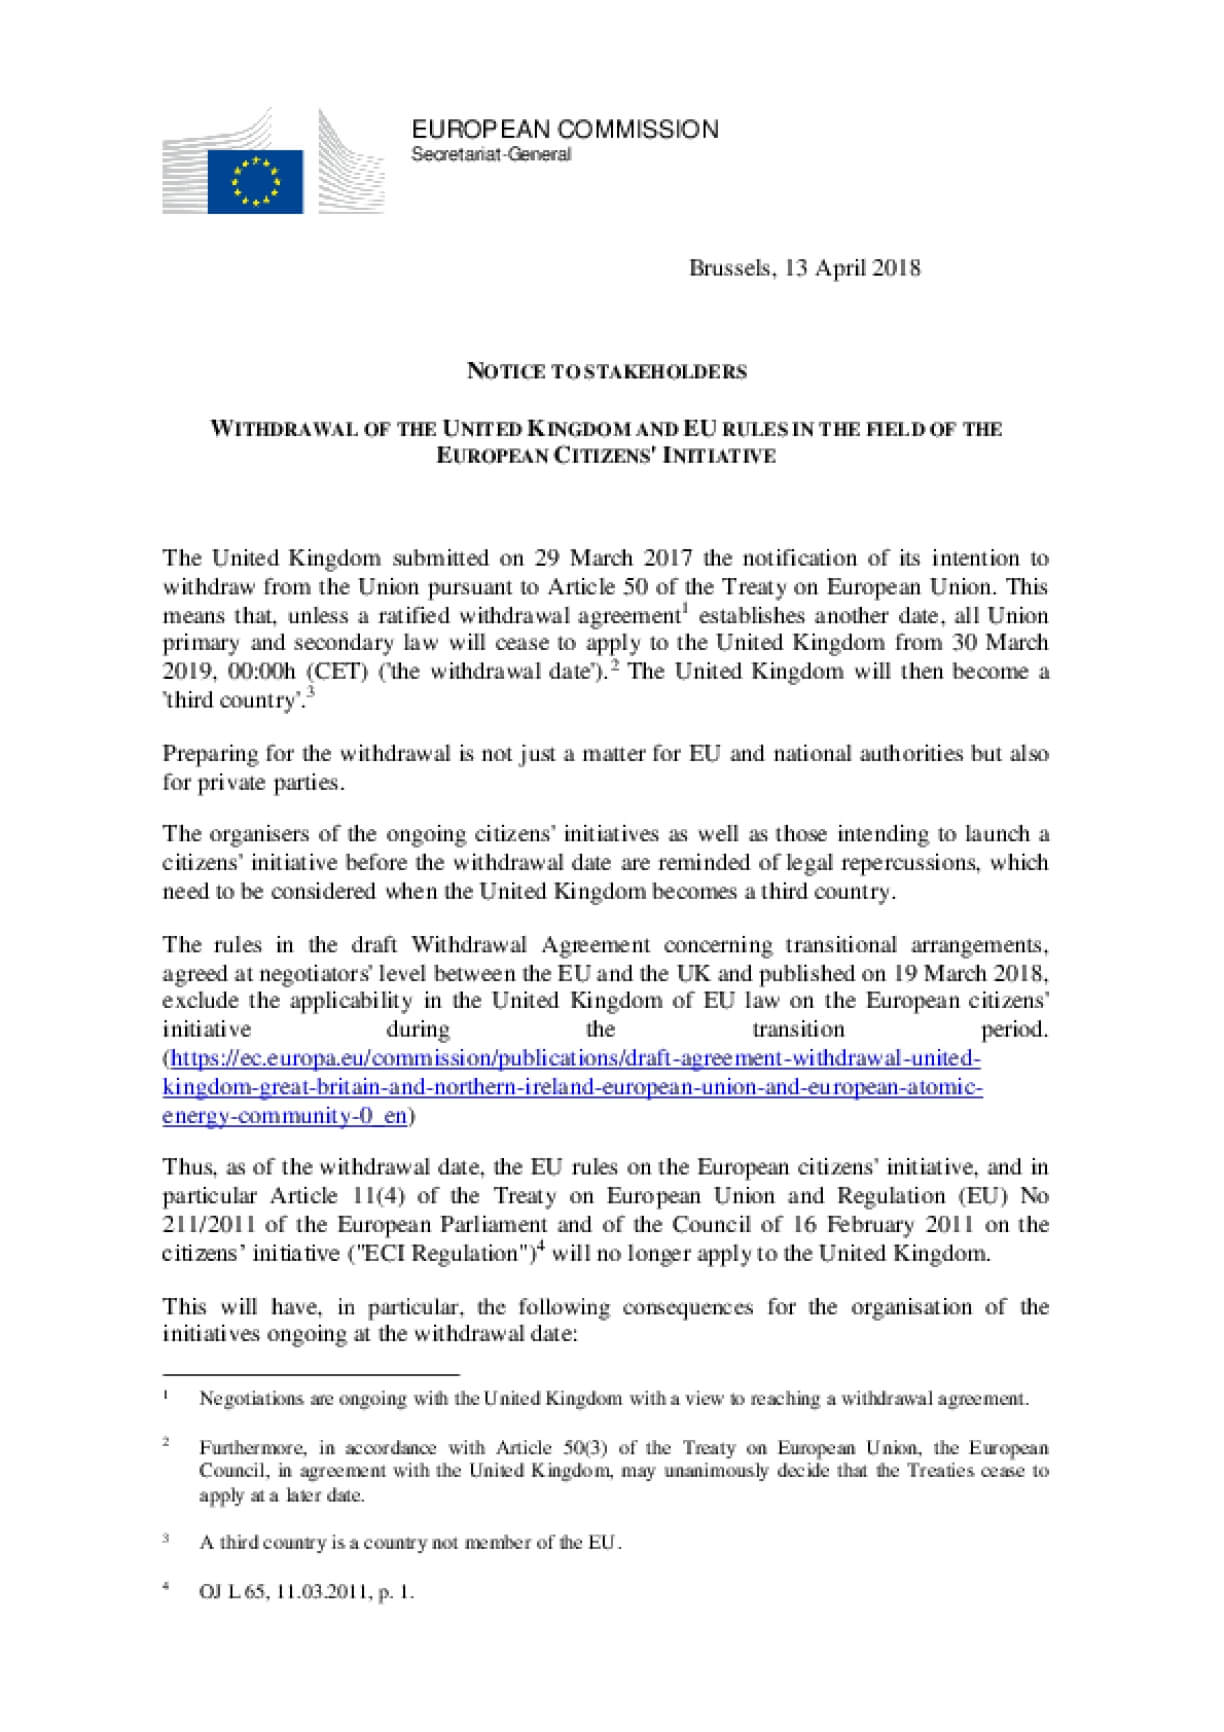 WITHDRAWAL OF THE UNITED KINGDOM AND EU RULES IN THE FIELD OF THE EUROPEAN CITIZENS' INITIATIVE